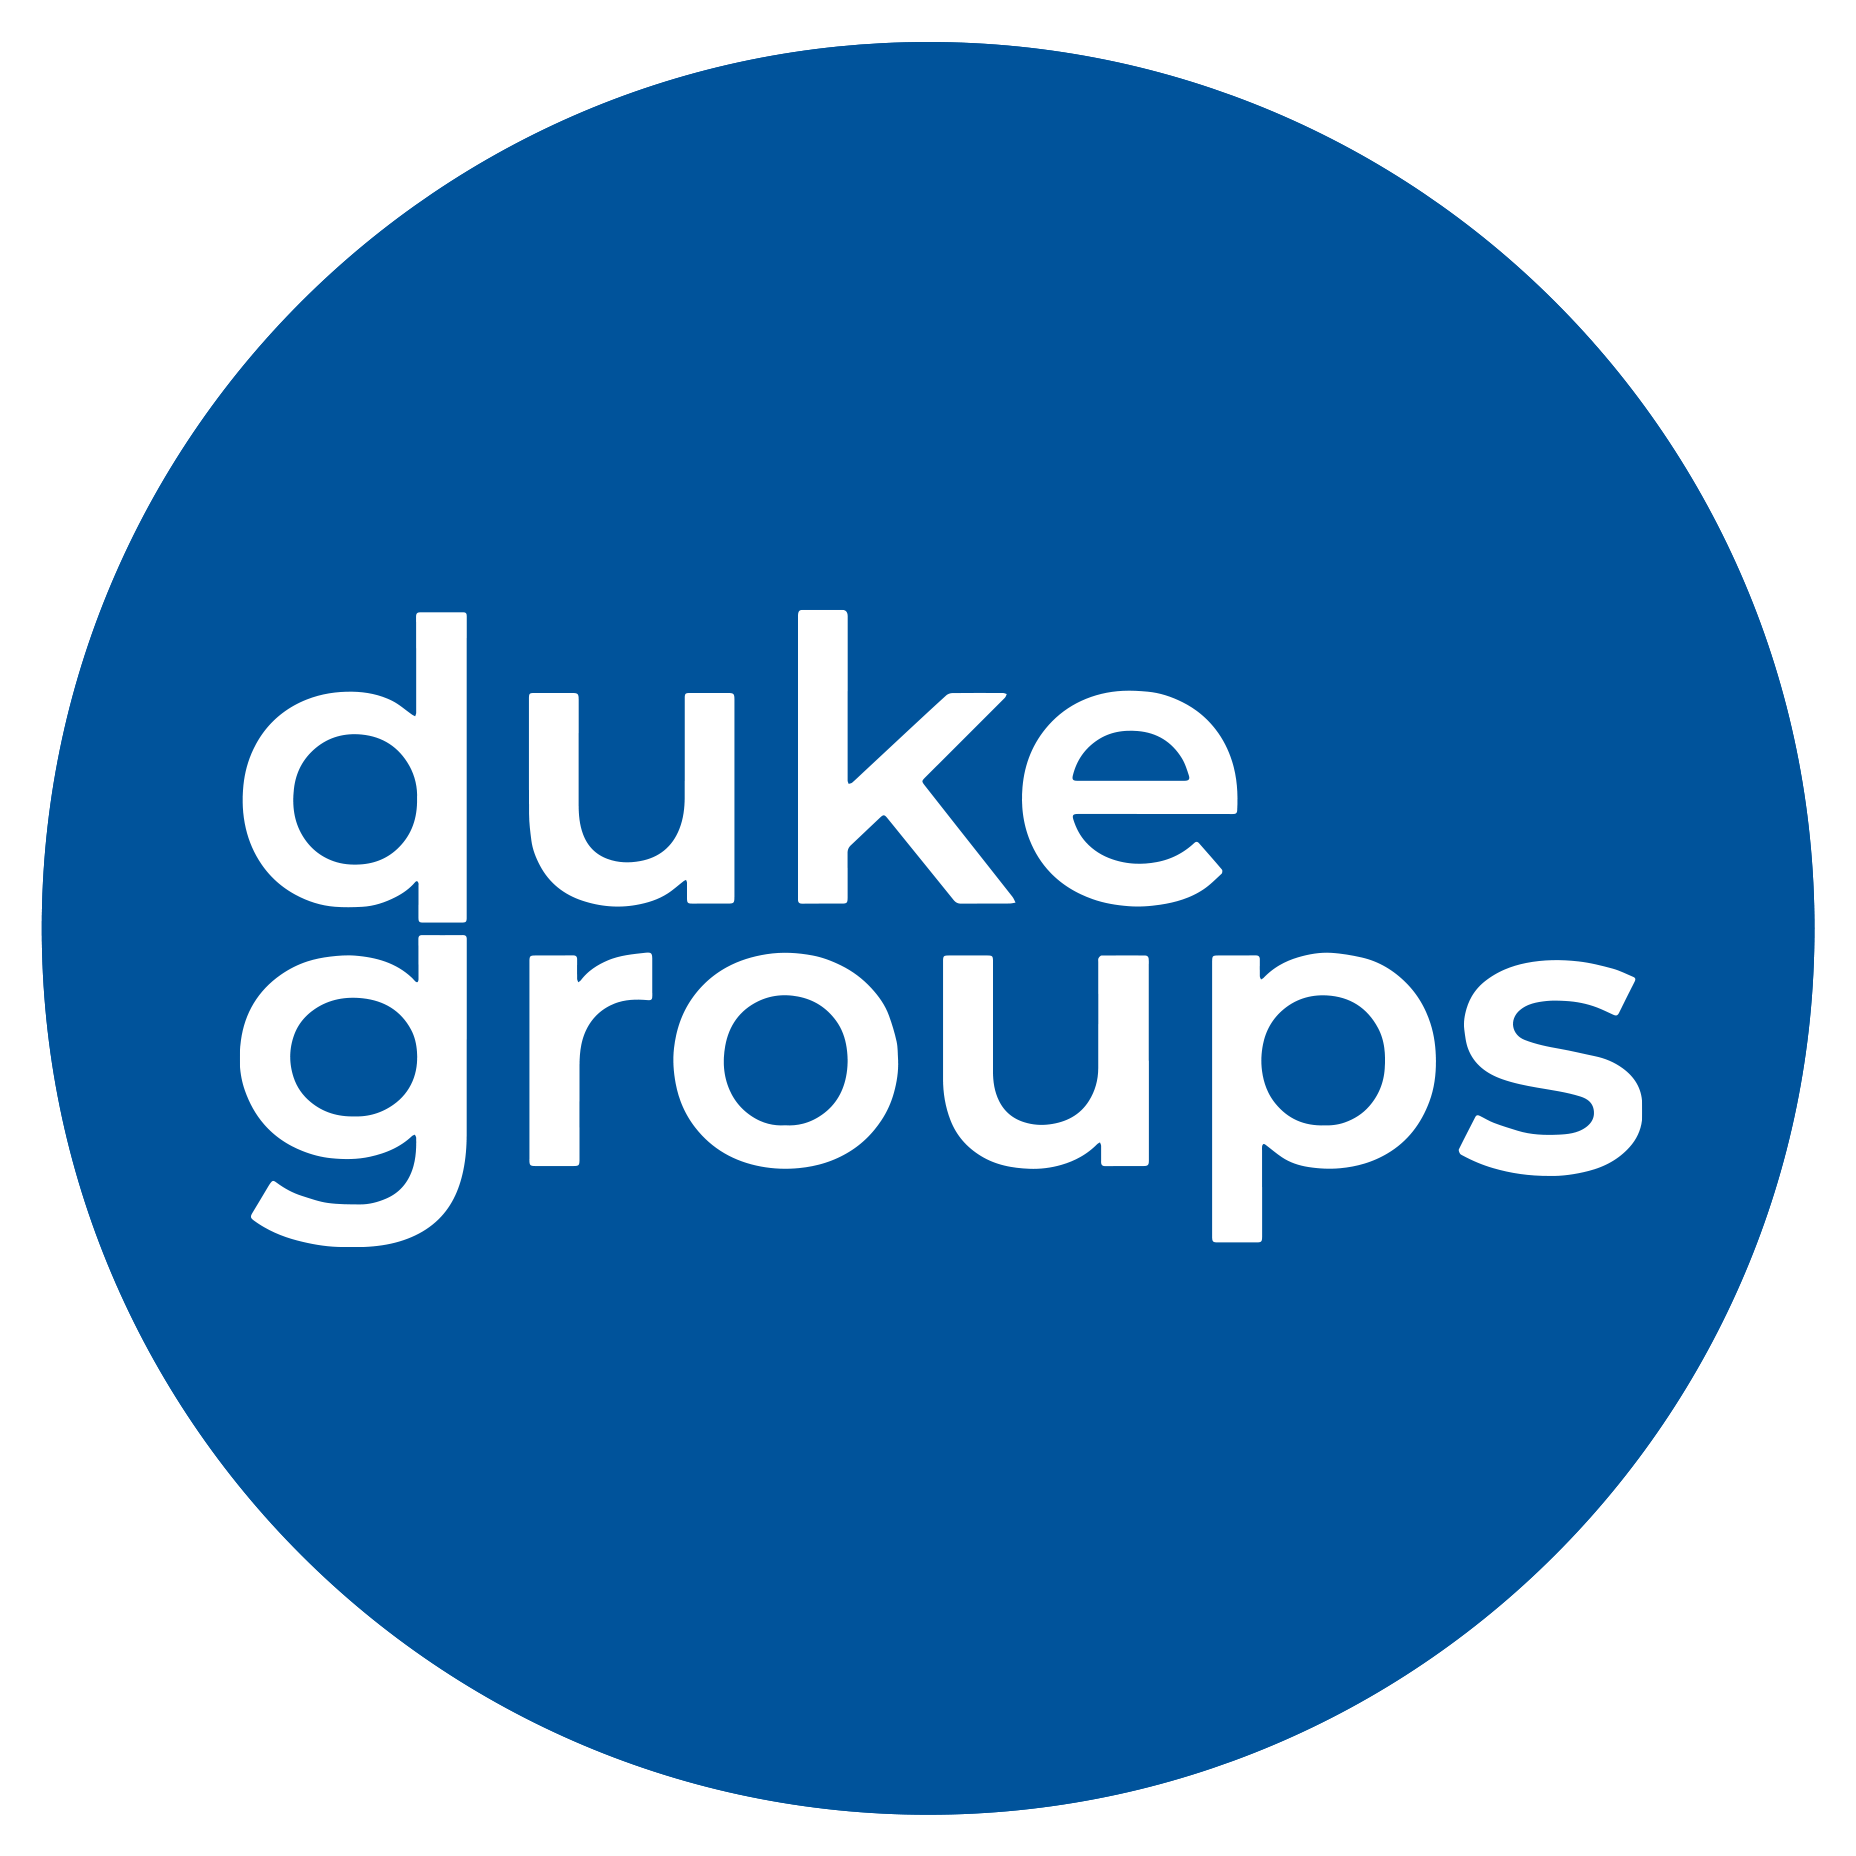 Duke University Logo Image.